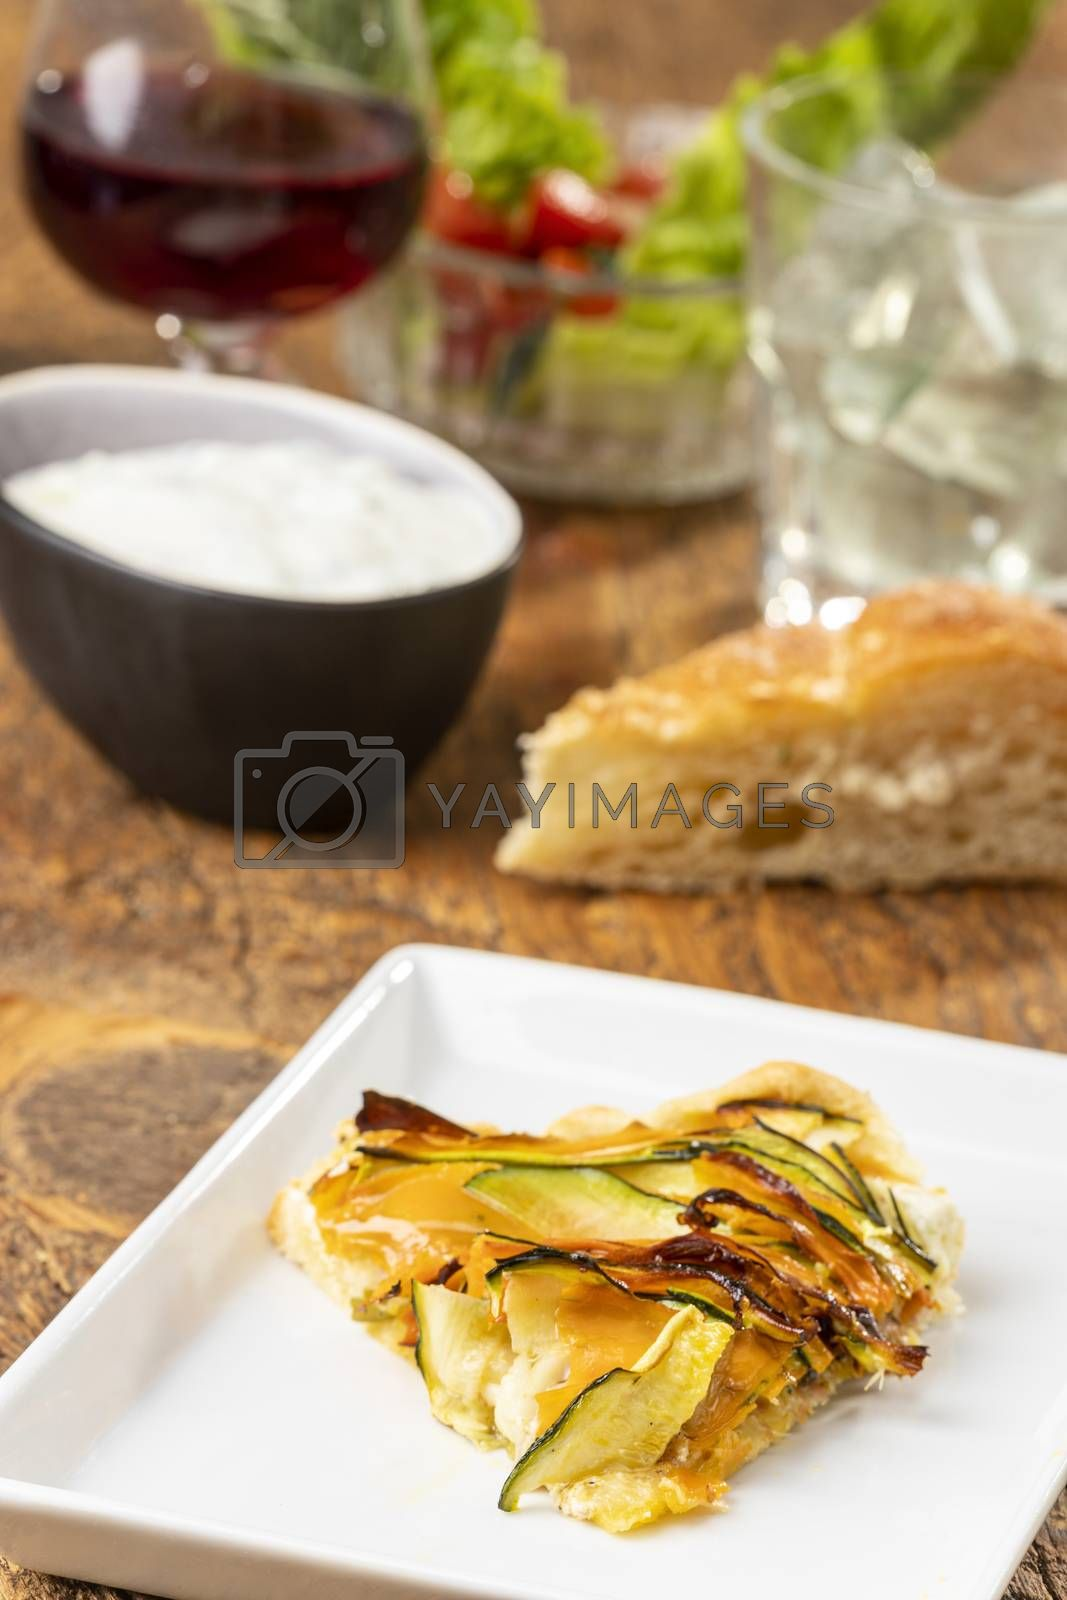 pie with carrots and zucchini by bernjuer